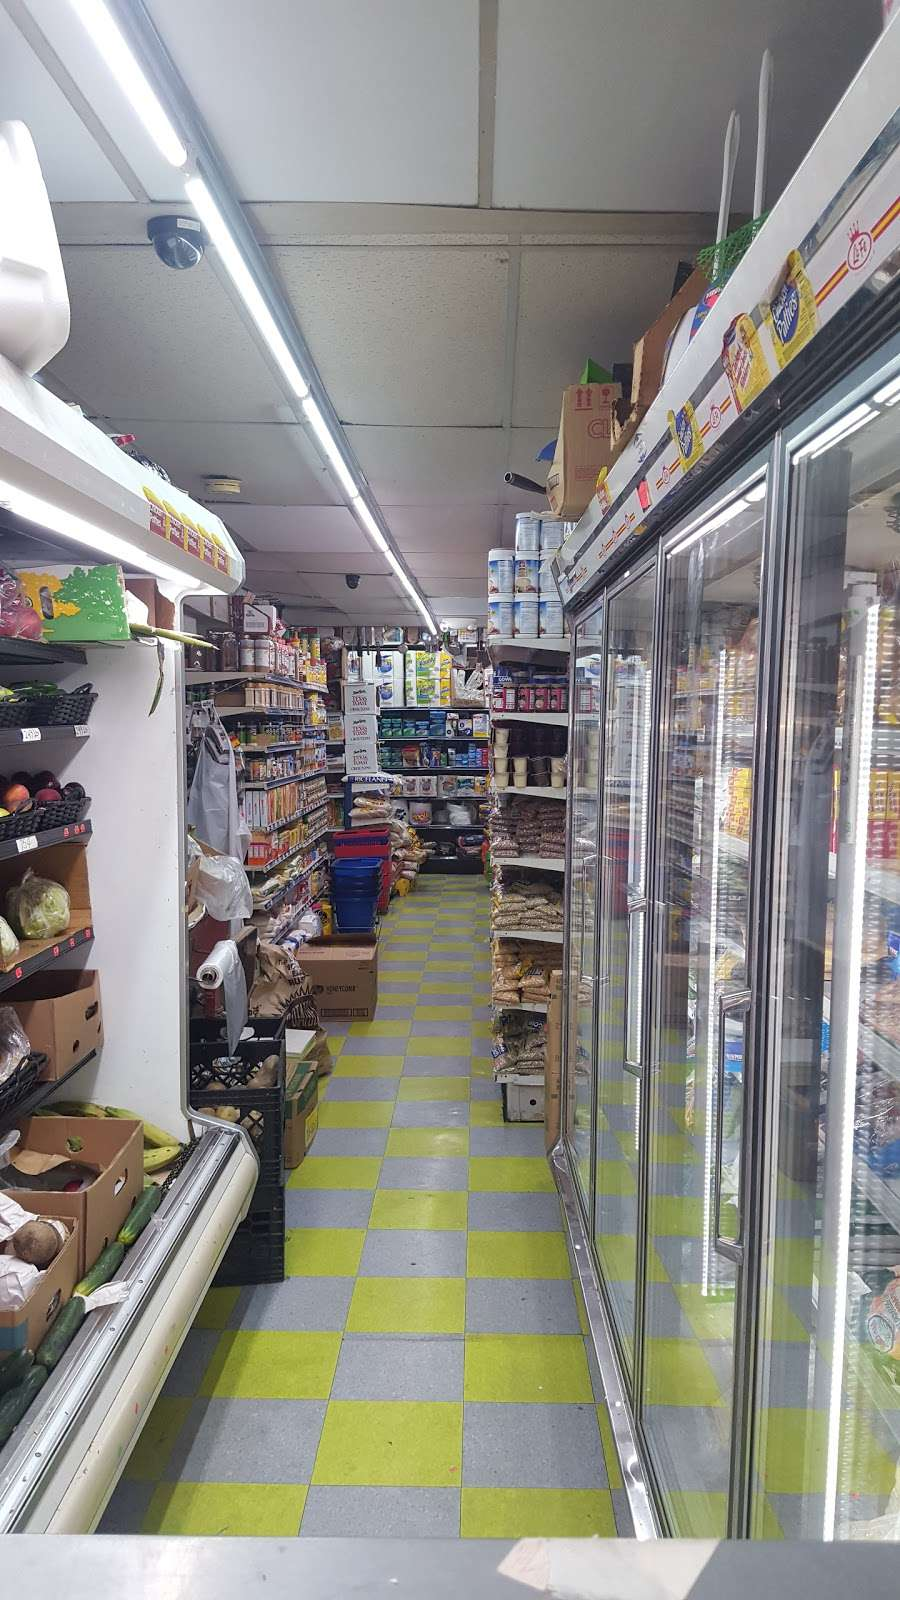 Nunez Brothers - store  | Photo 2 of 7 | Address: 946 S 4th St, Camden, NJ 08103, USA | Phone: (856) 541-5718